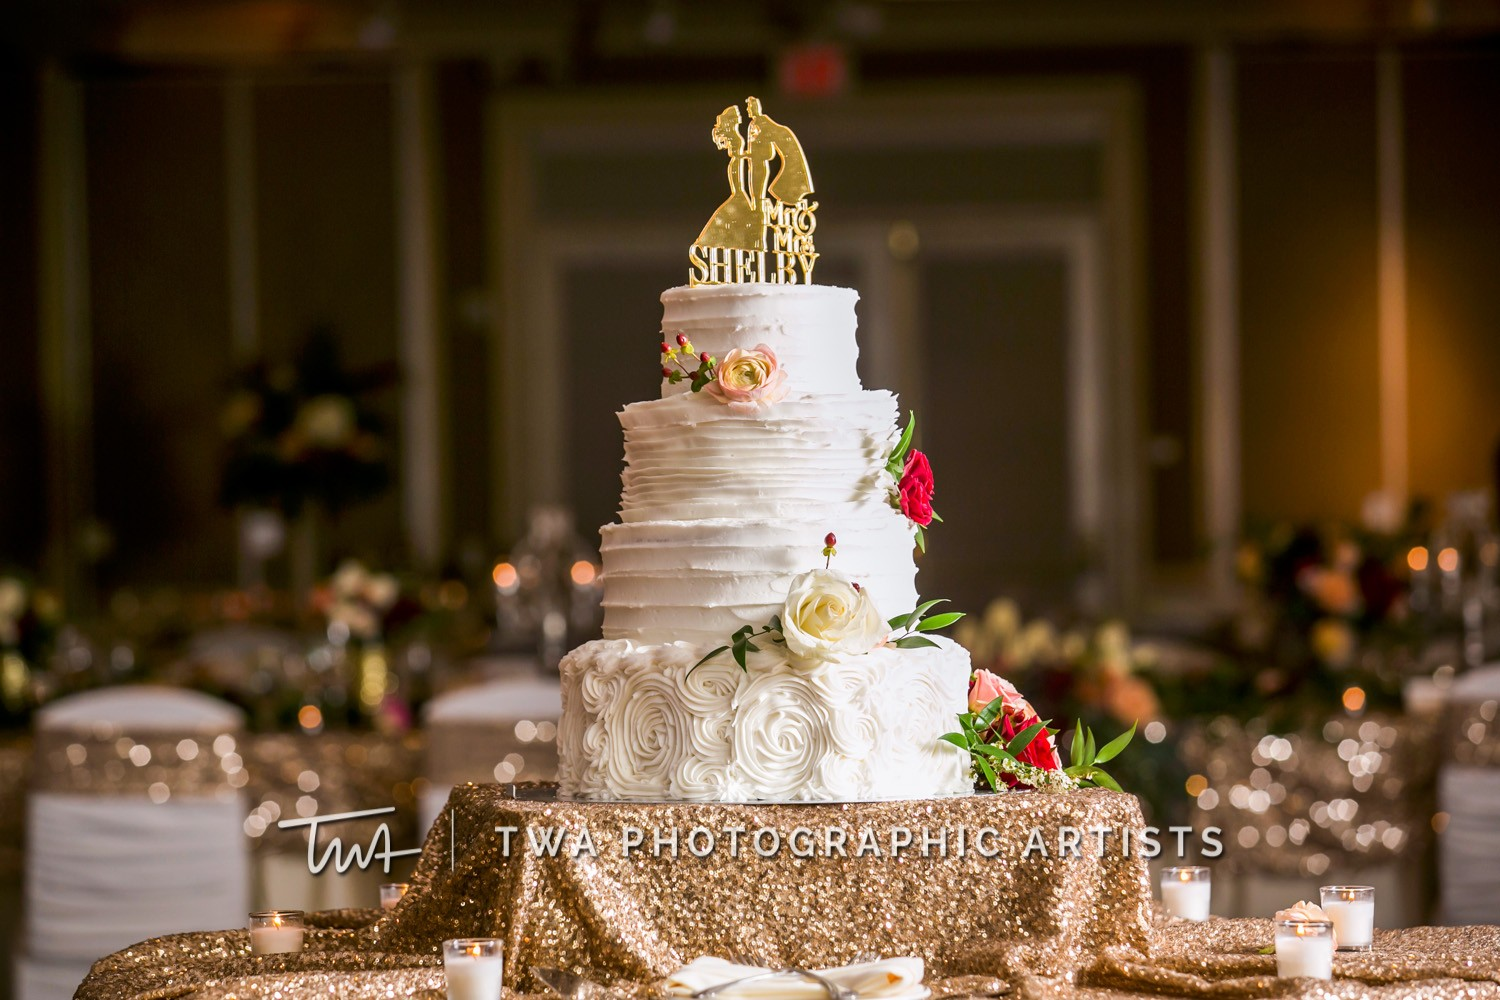 Chicago-Wedding-Photographer-TWA-Photographic-Artists-Bolingbrook-GC_Kuhn_Shelby_DR_DH-0554